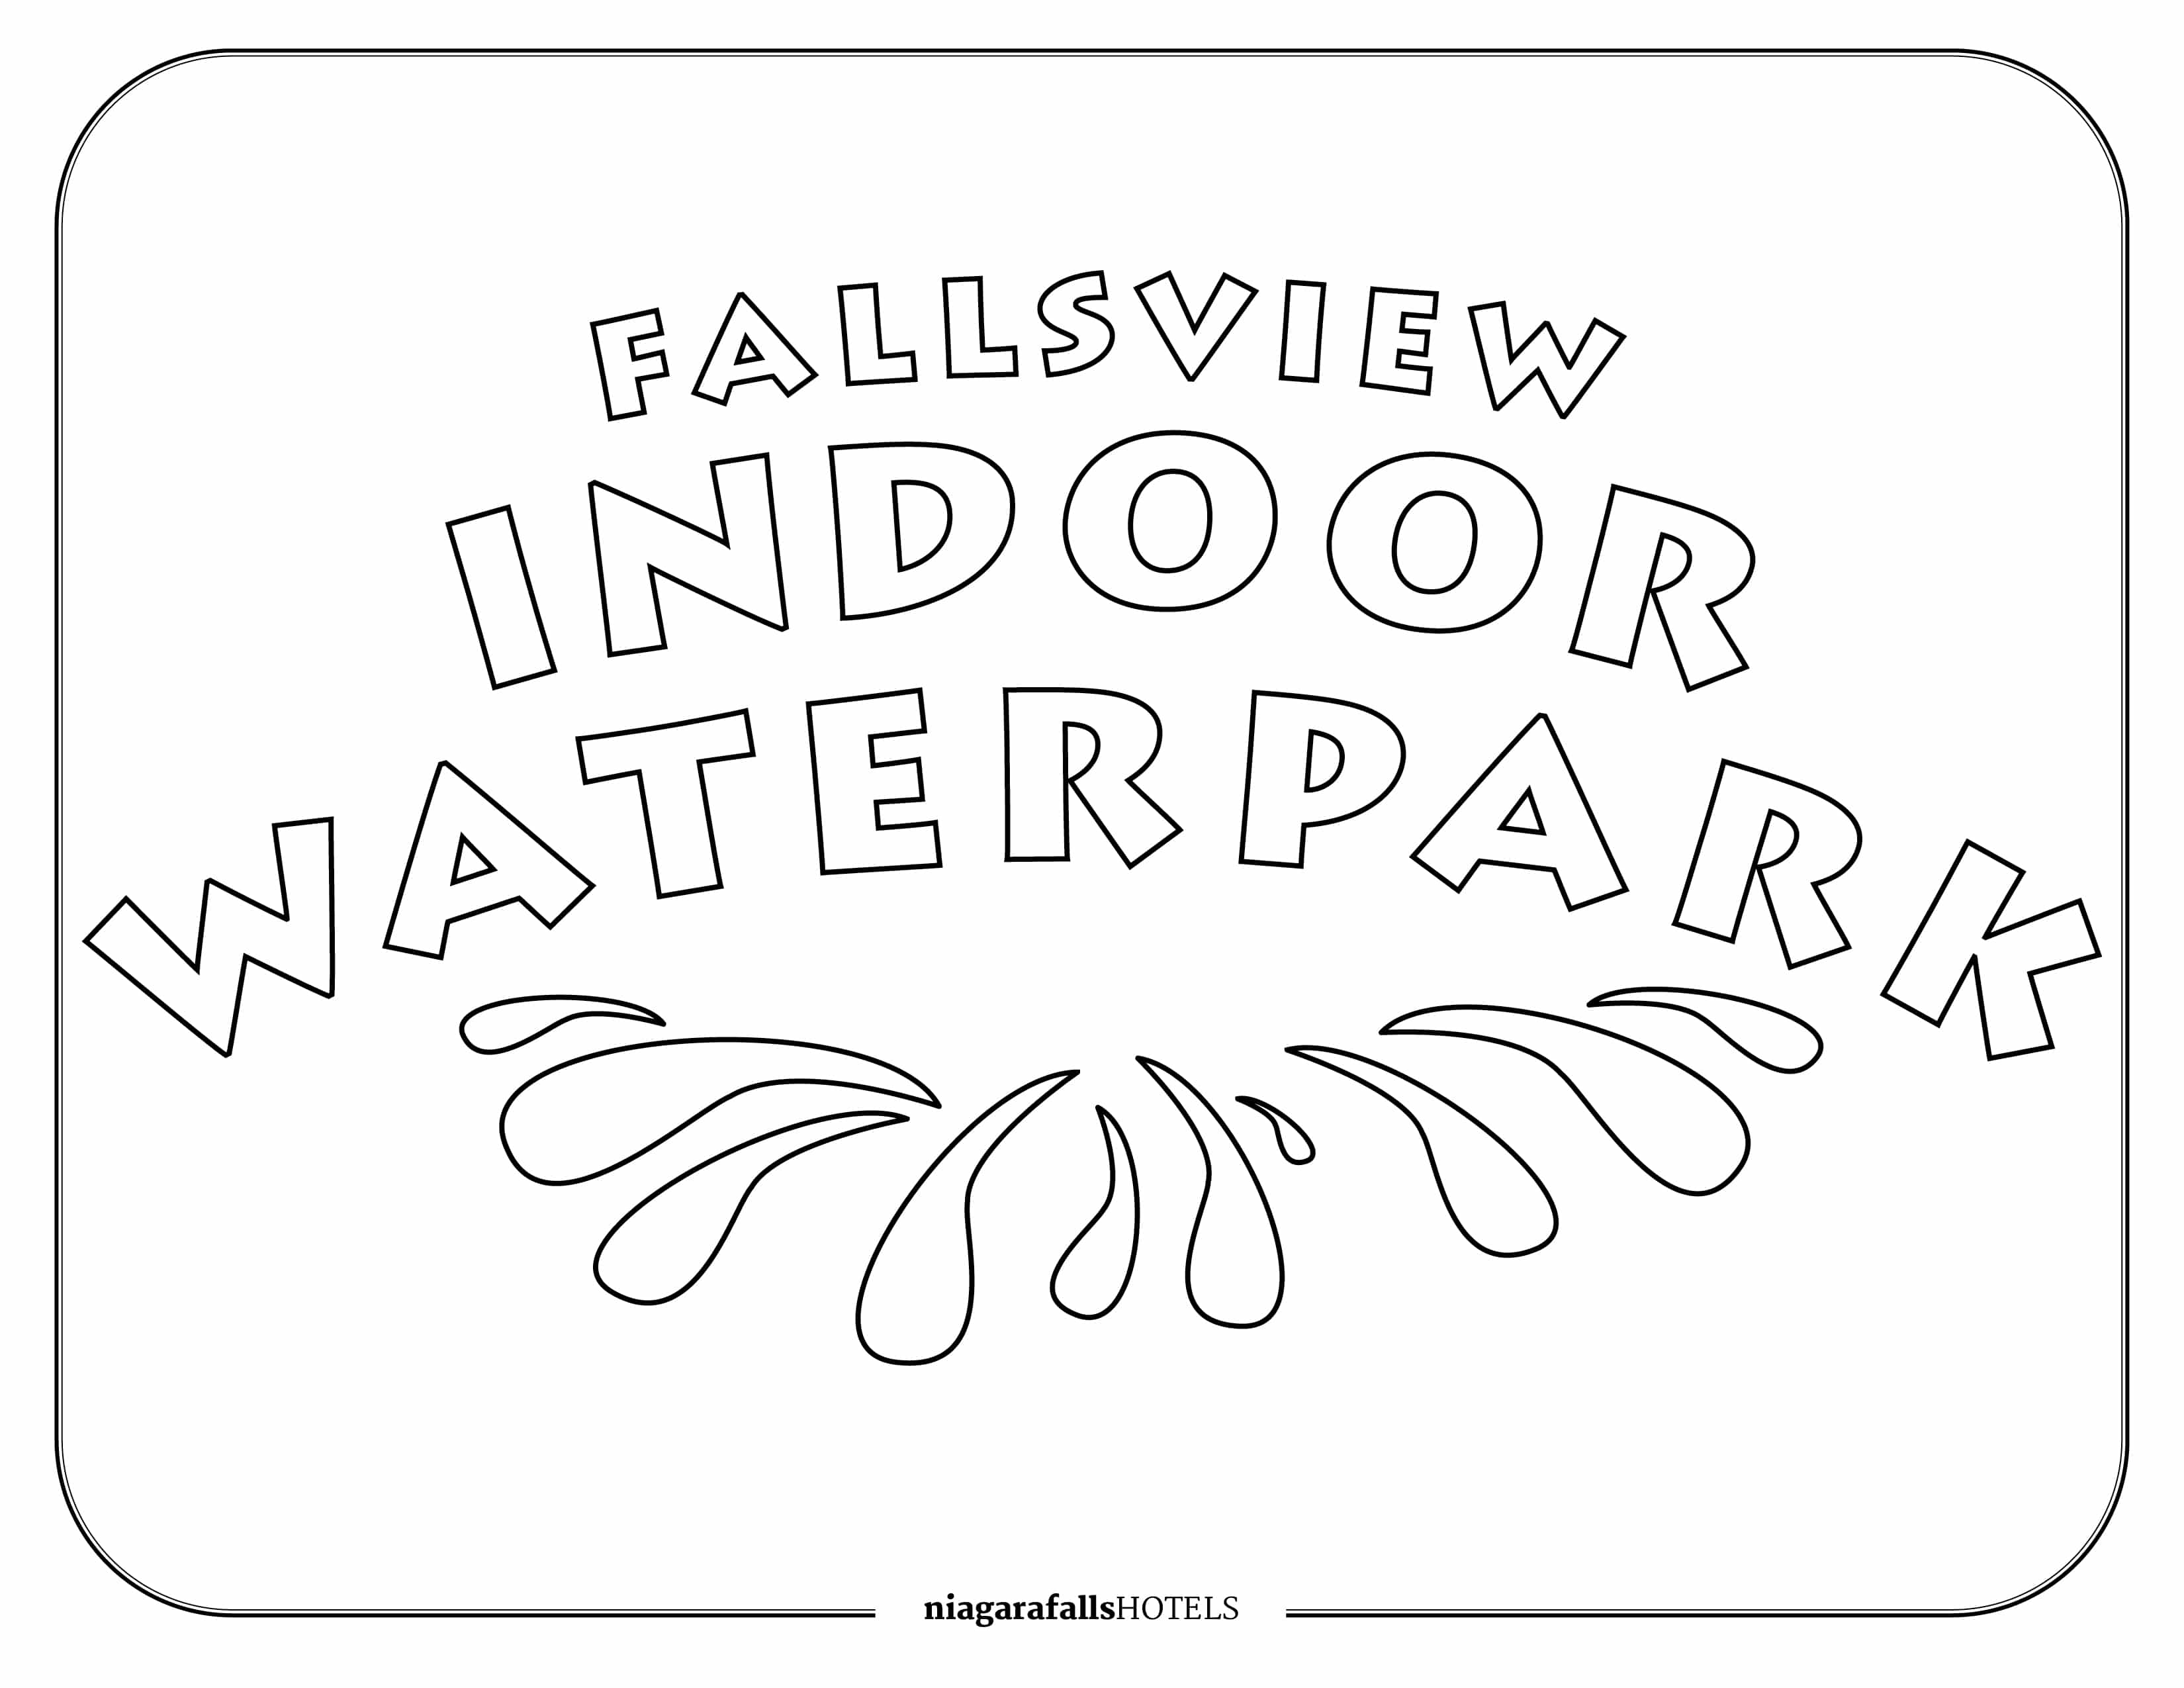 Fallsview Indoor Waterpark Colouring Page